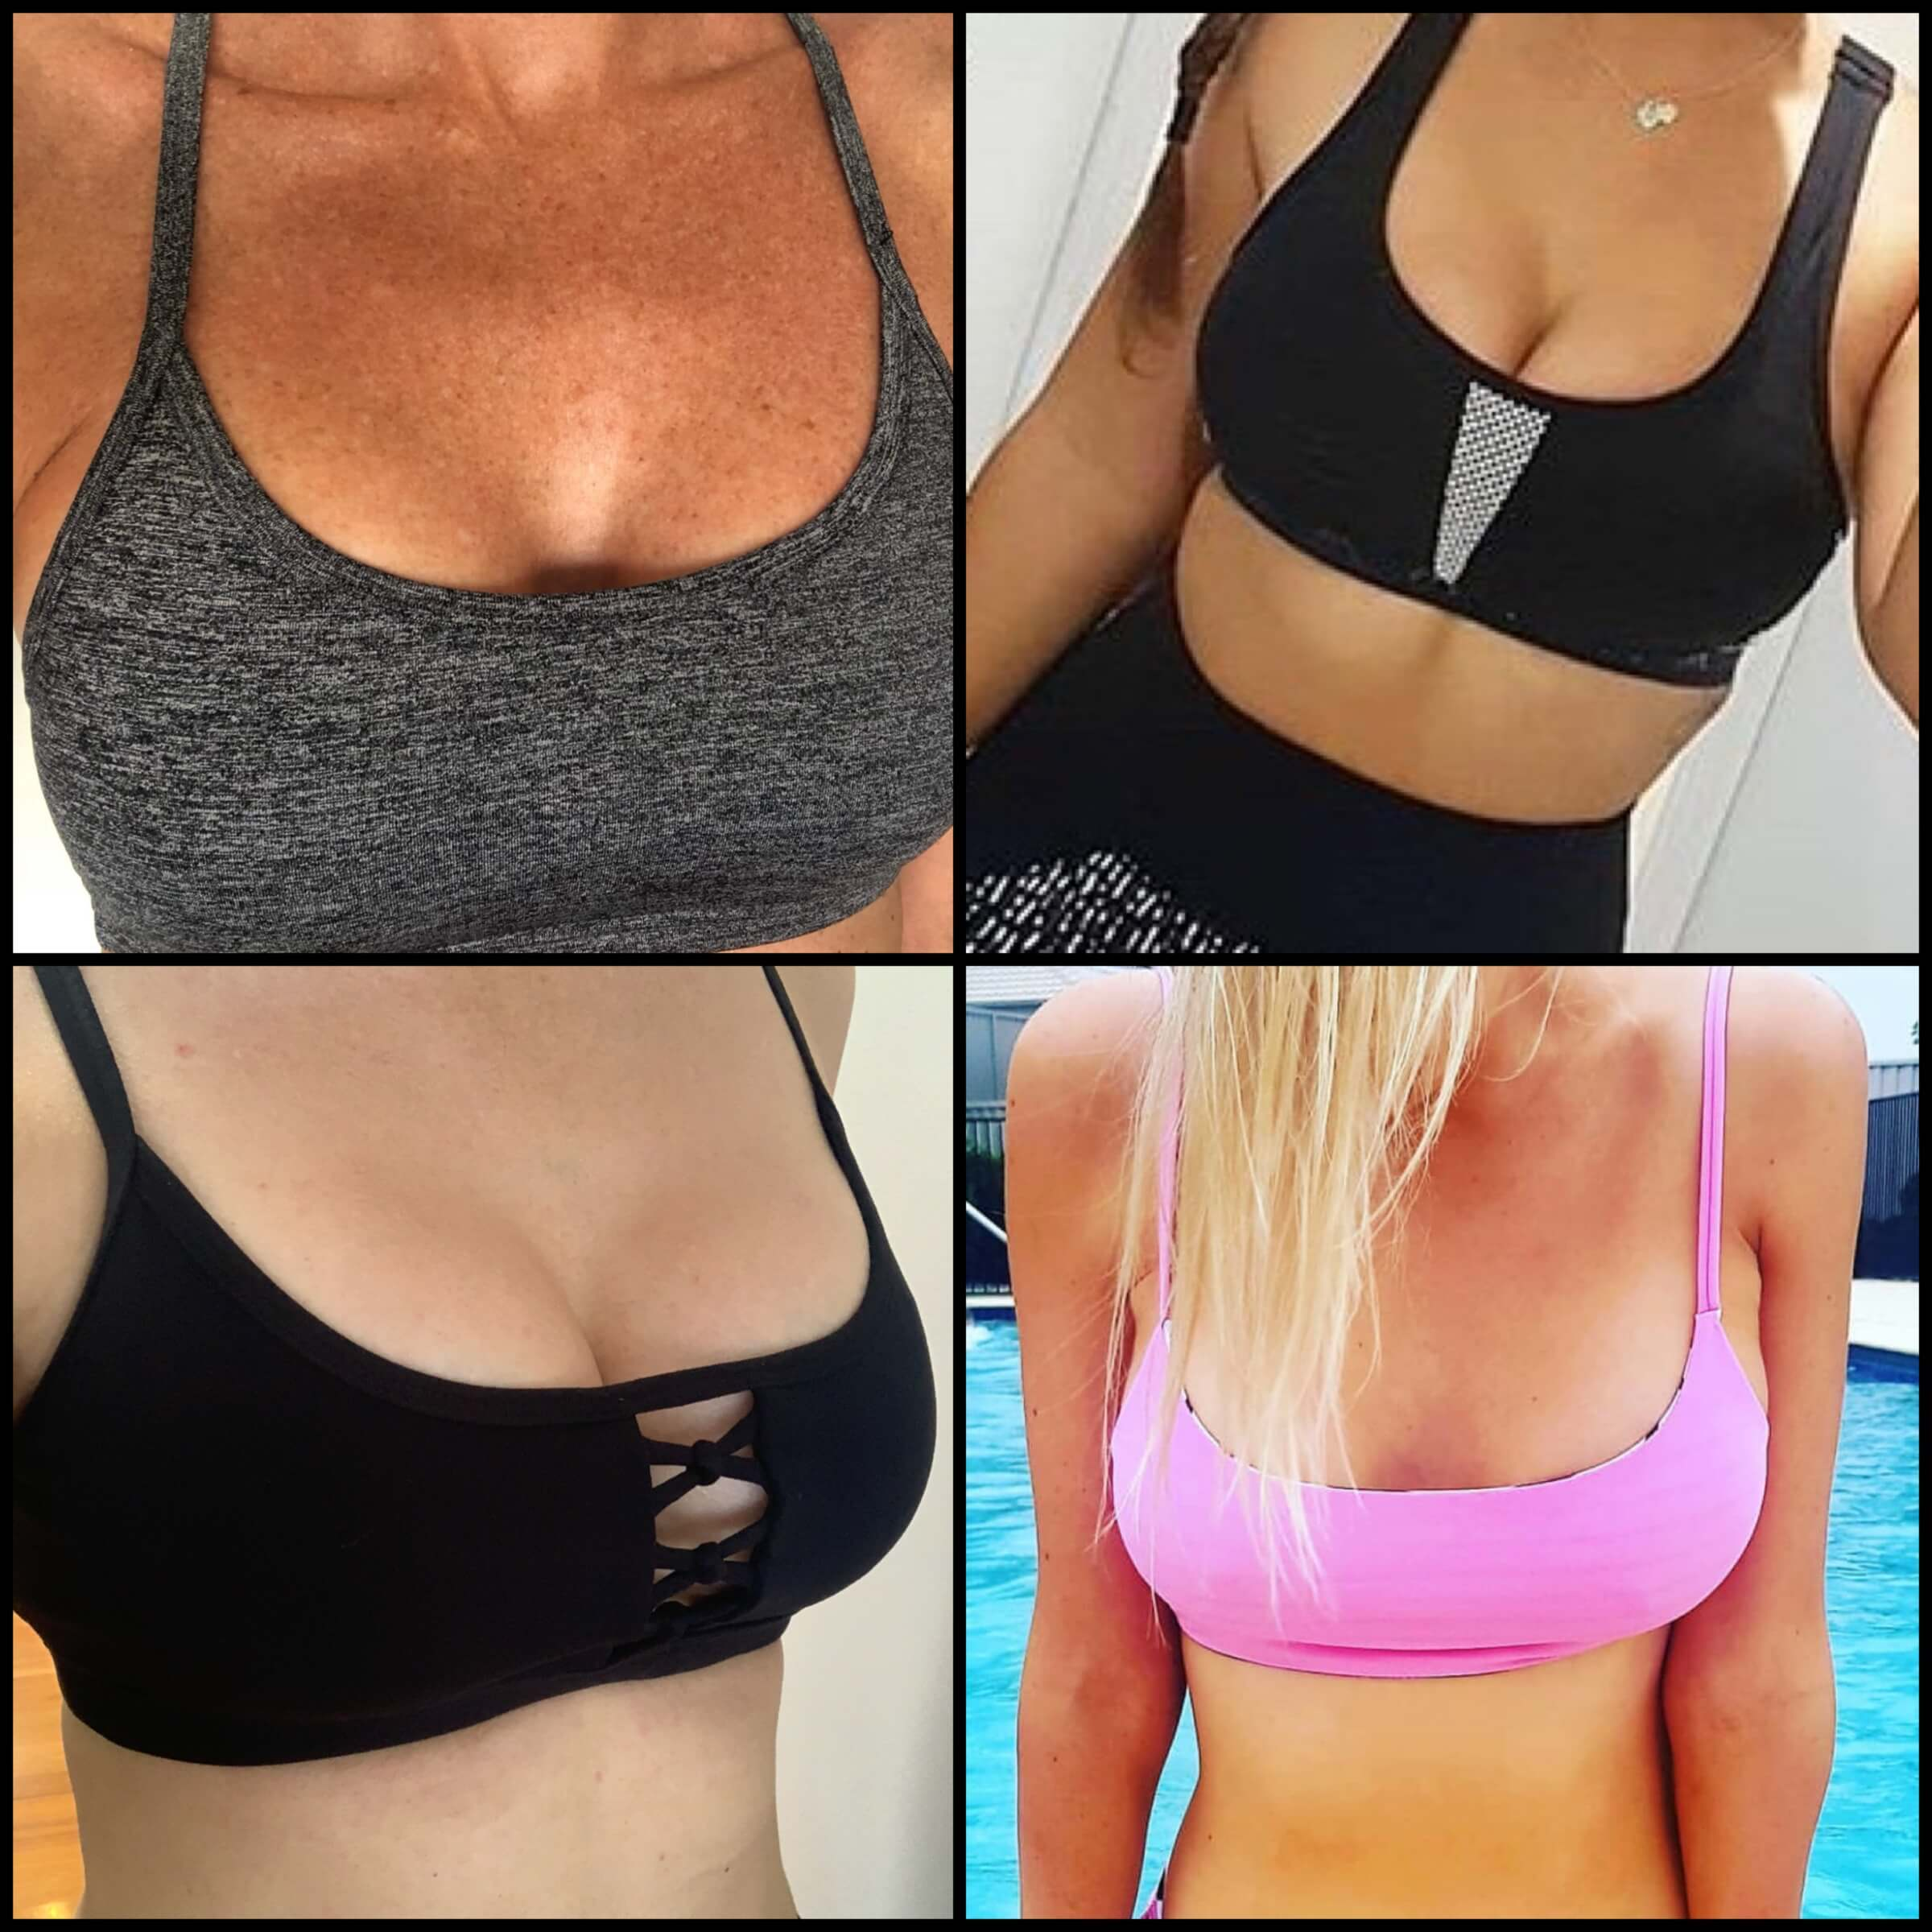 breast augmentation safe workout advice